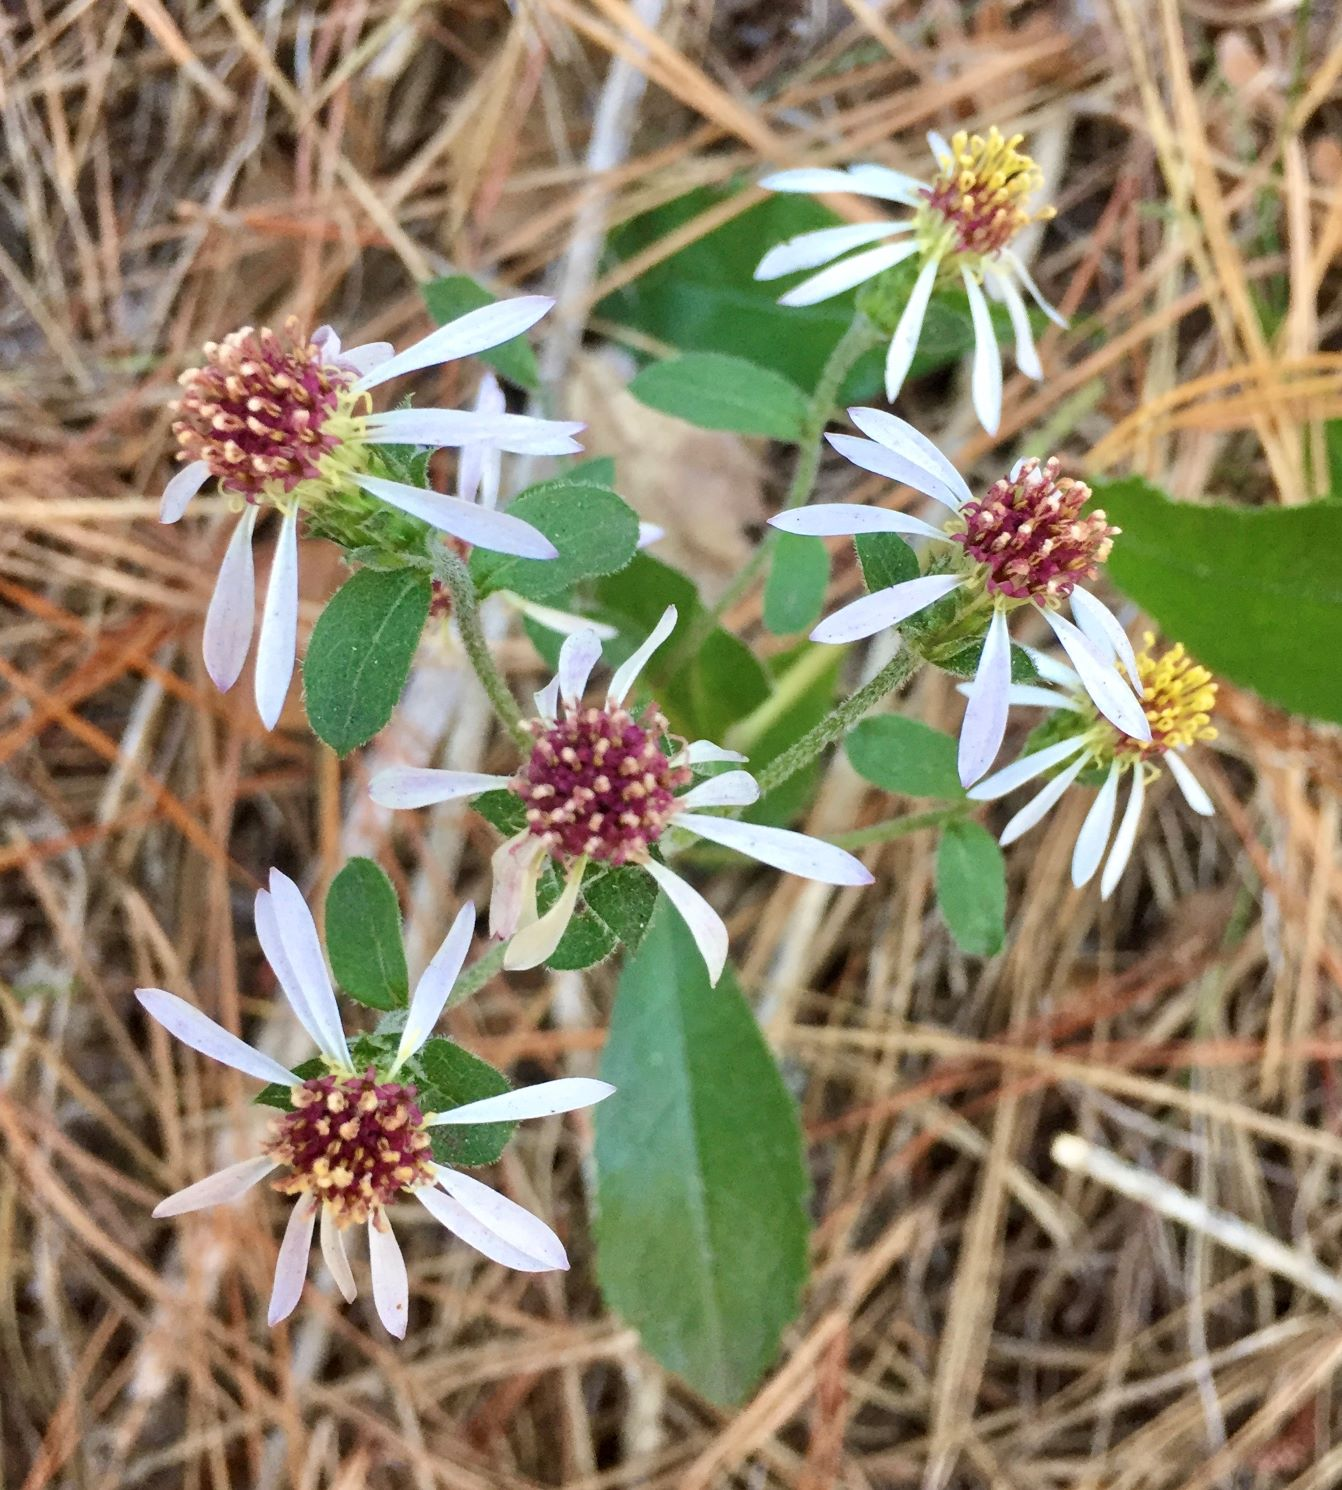 Aster, Rough-leaved